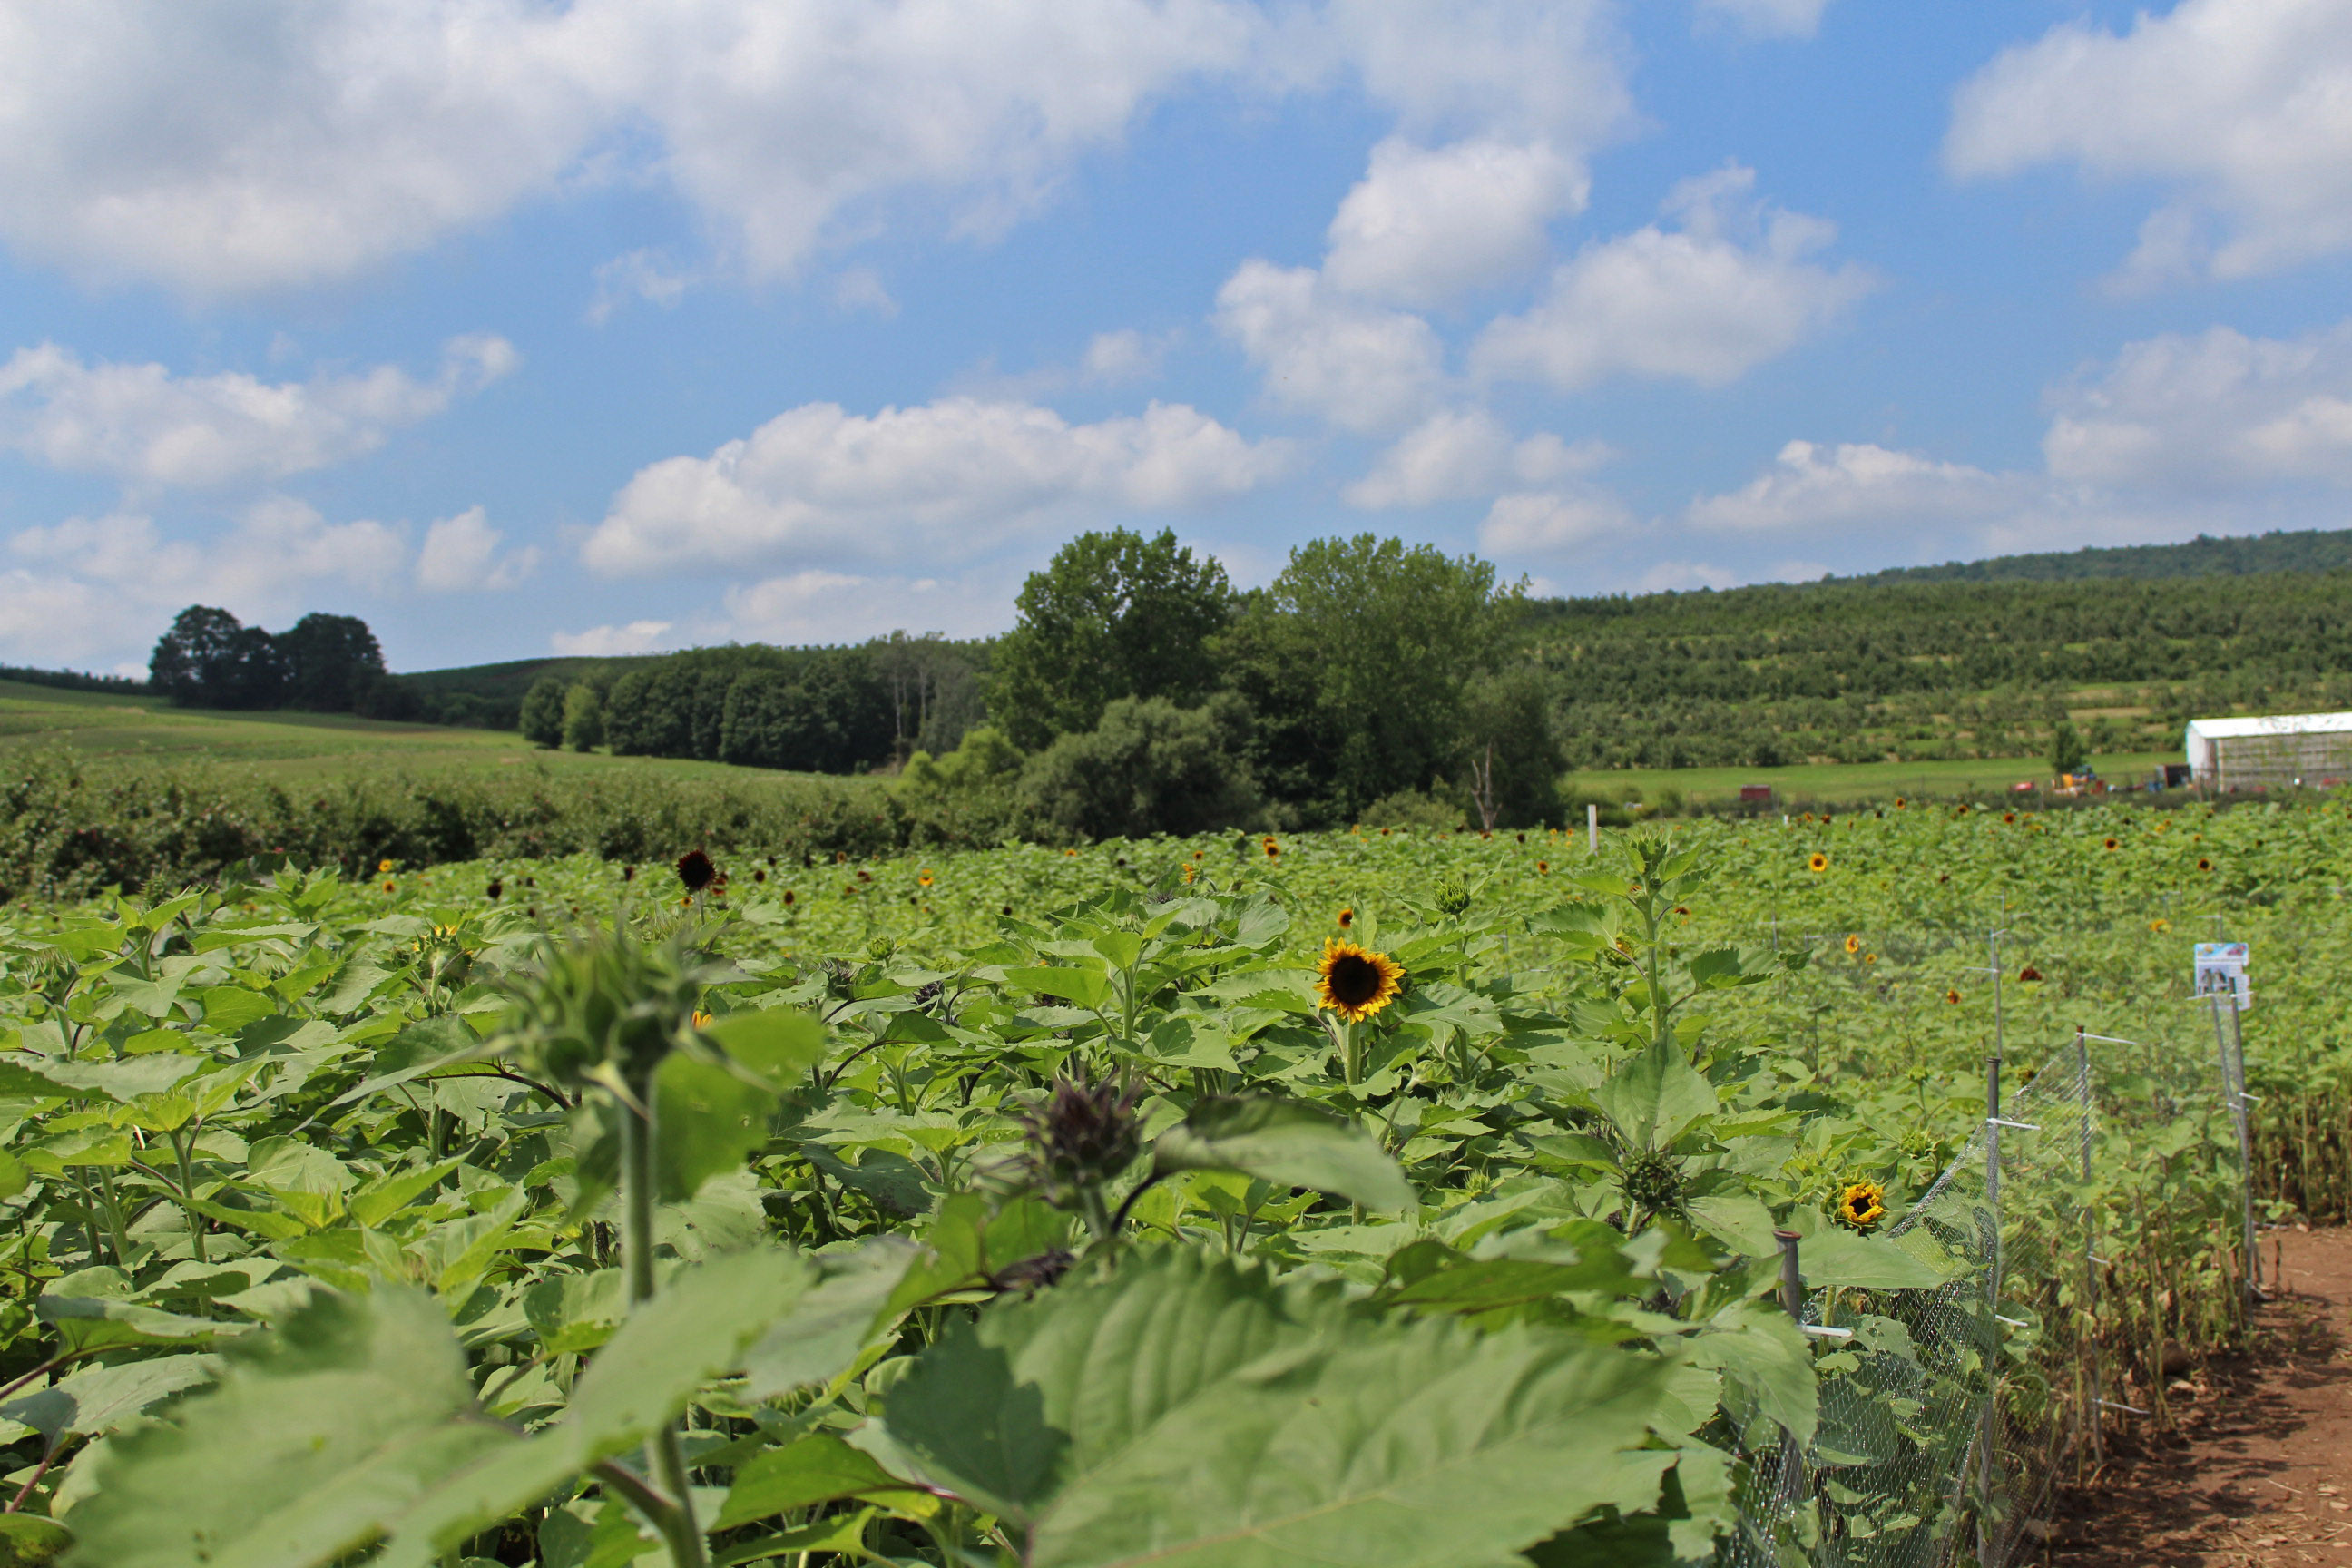 A broad view of the sunflowers from within the maze.